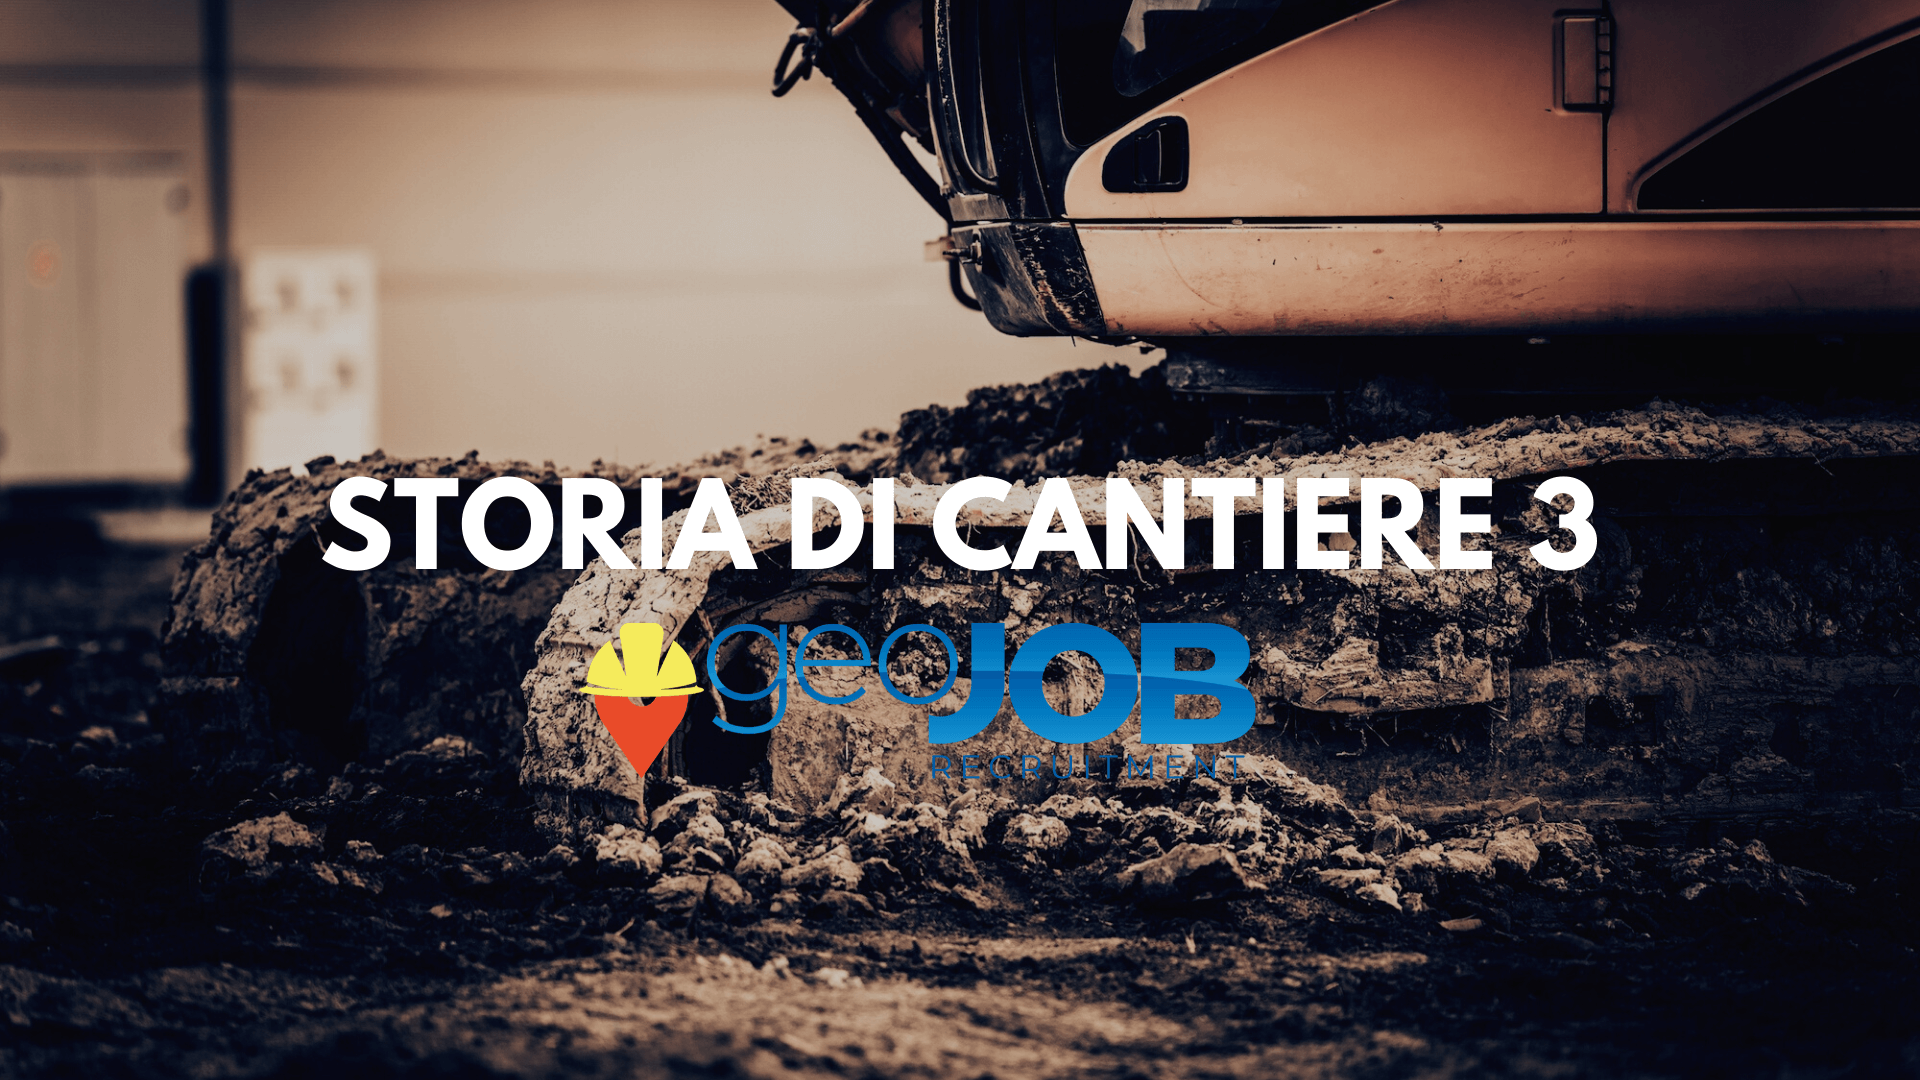 STORIE DI CANTIERE 3